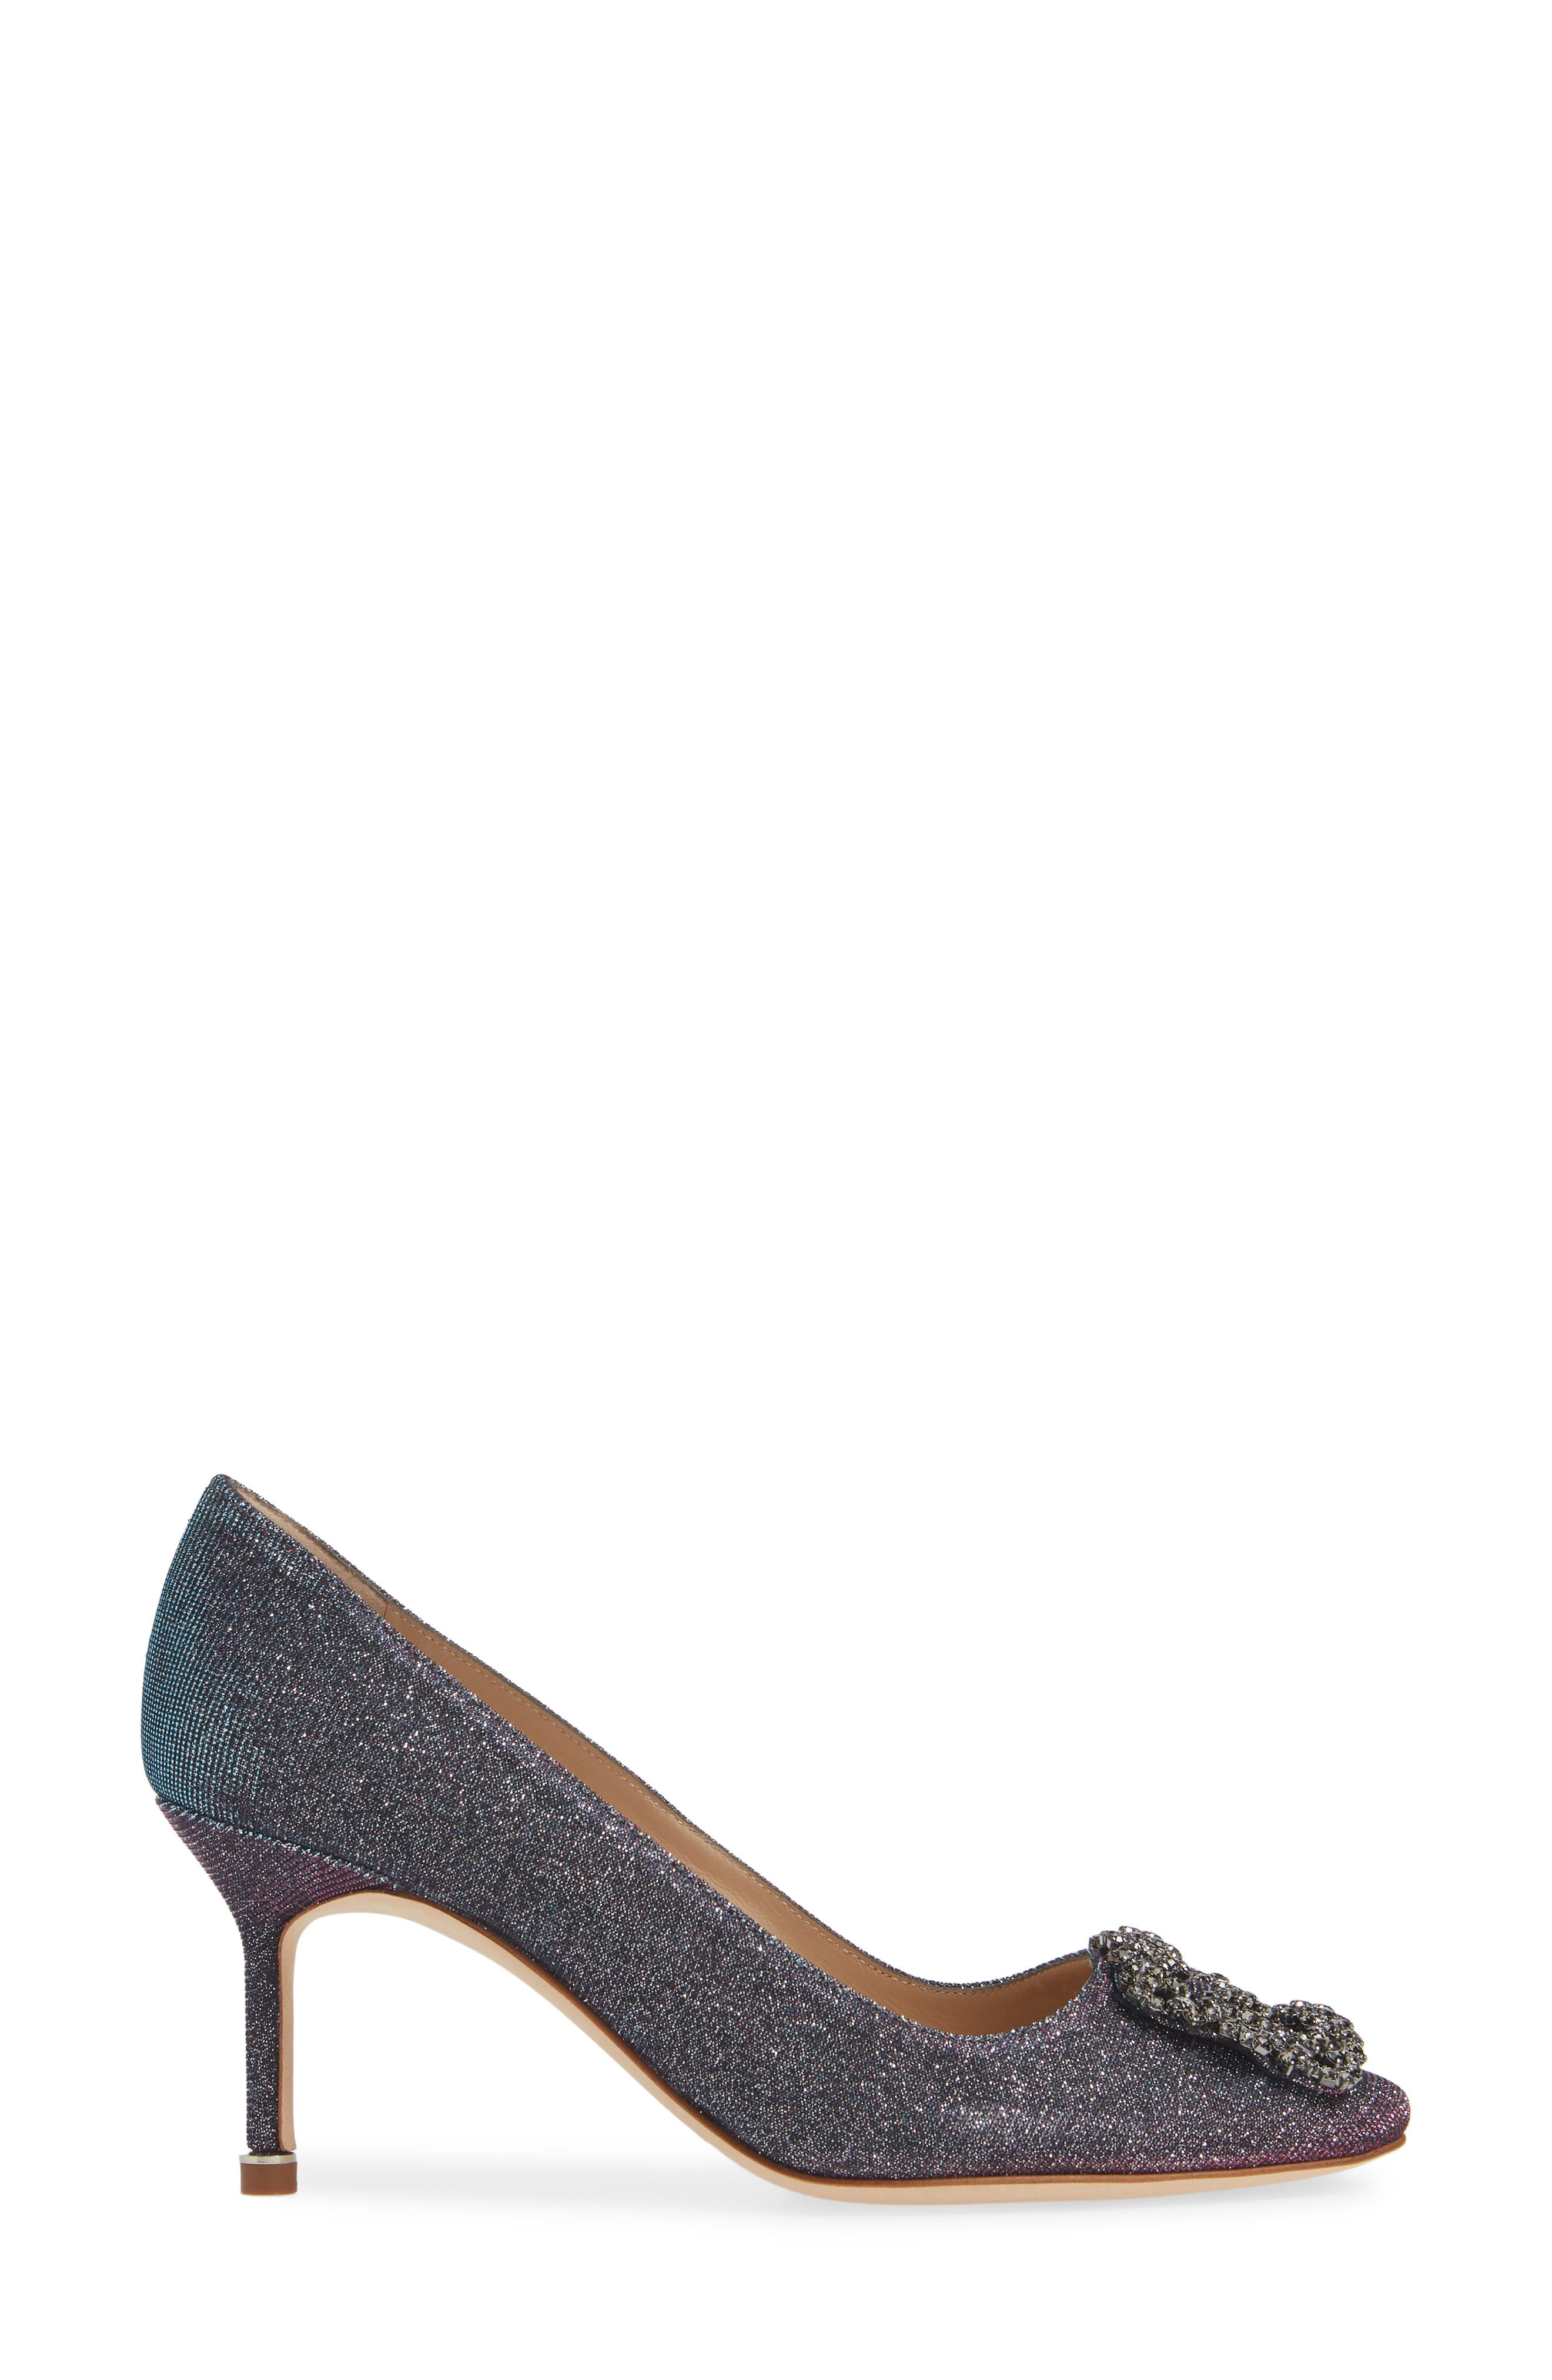 MANOLO BLAHNIK, Hangisi Pump, Alternate thumbnail 3, color, MIDNIGHT BLUE